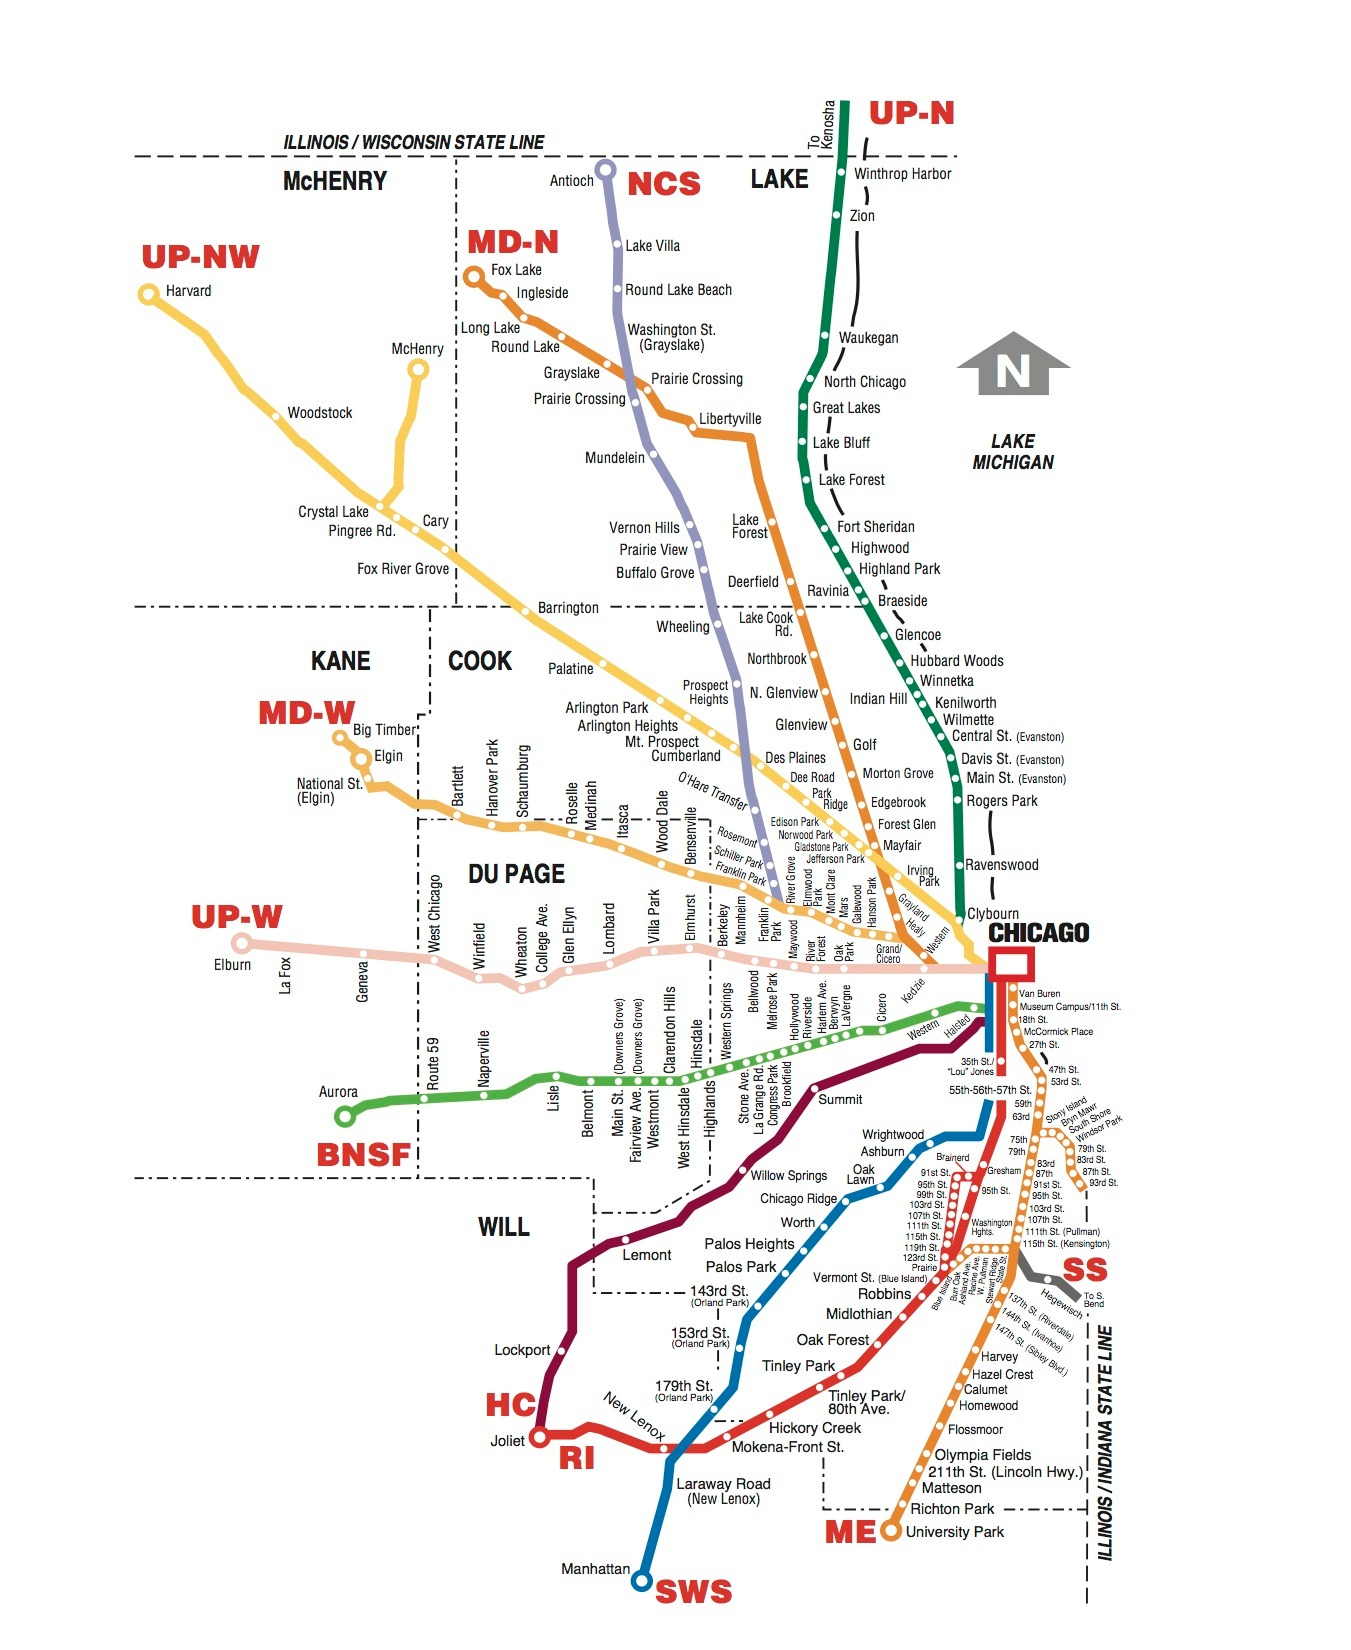 . metra map – chicago transit guide